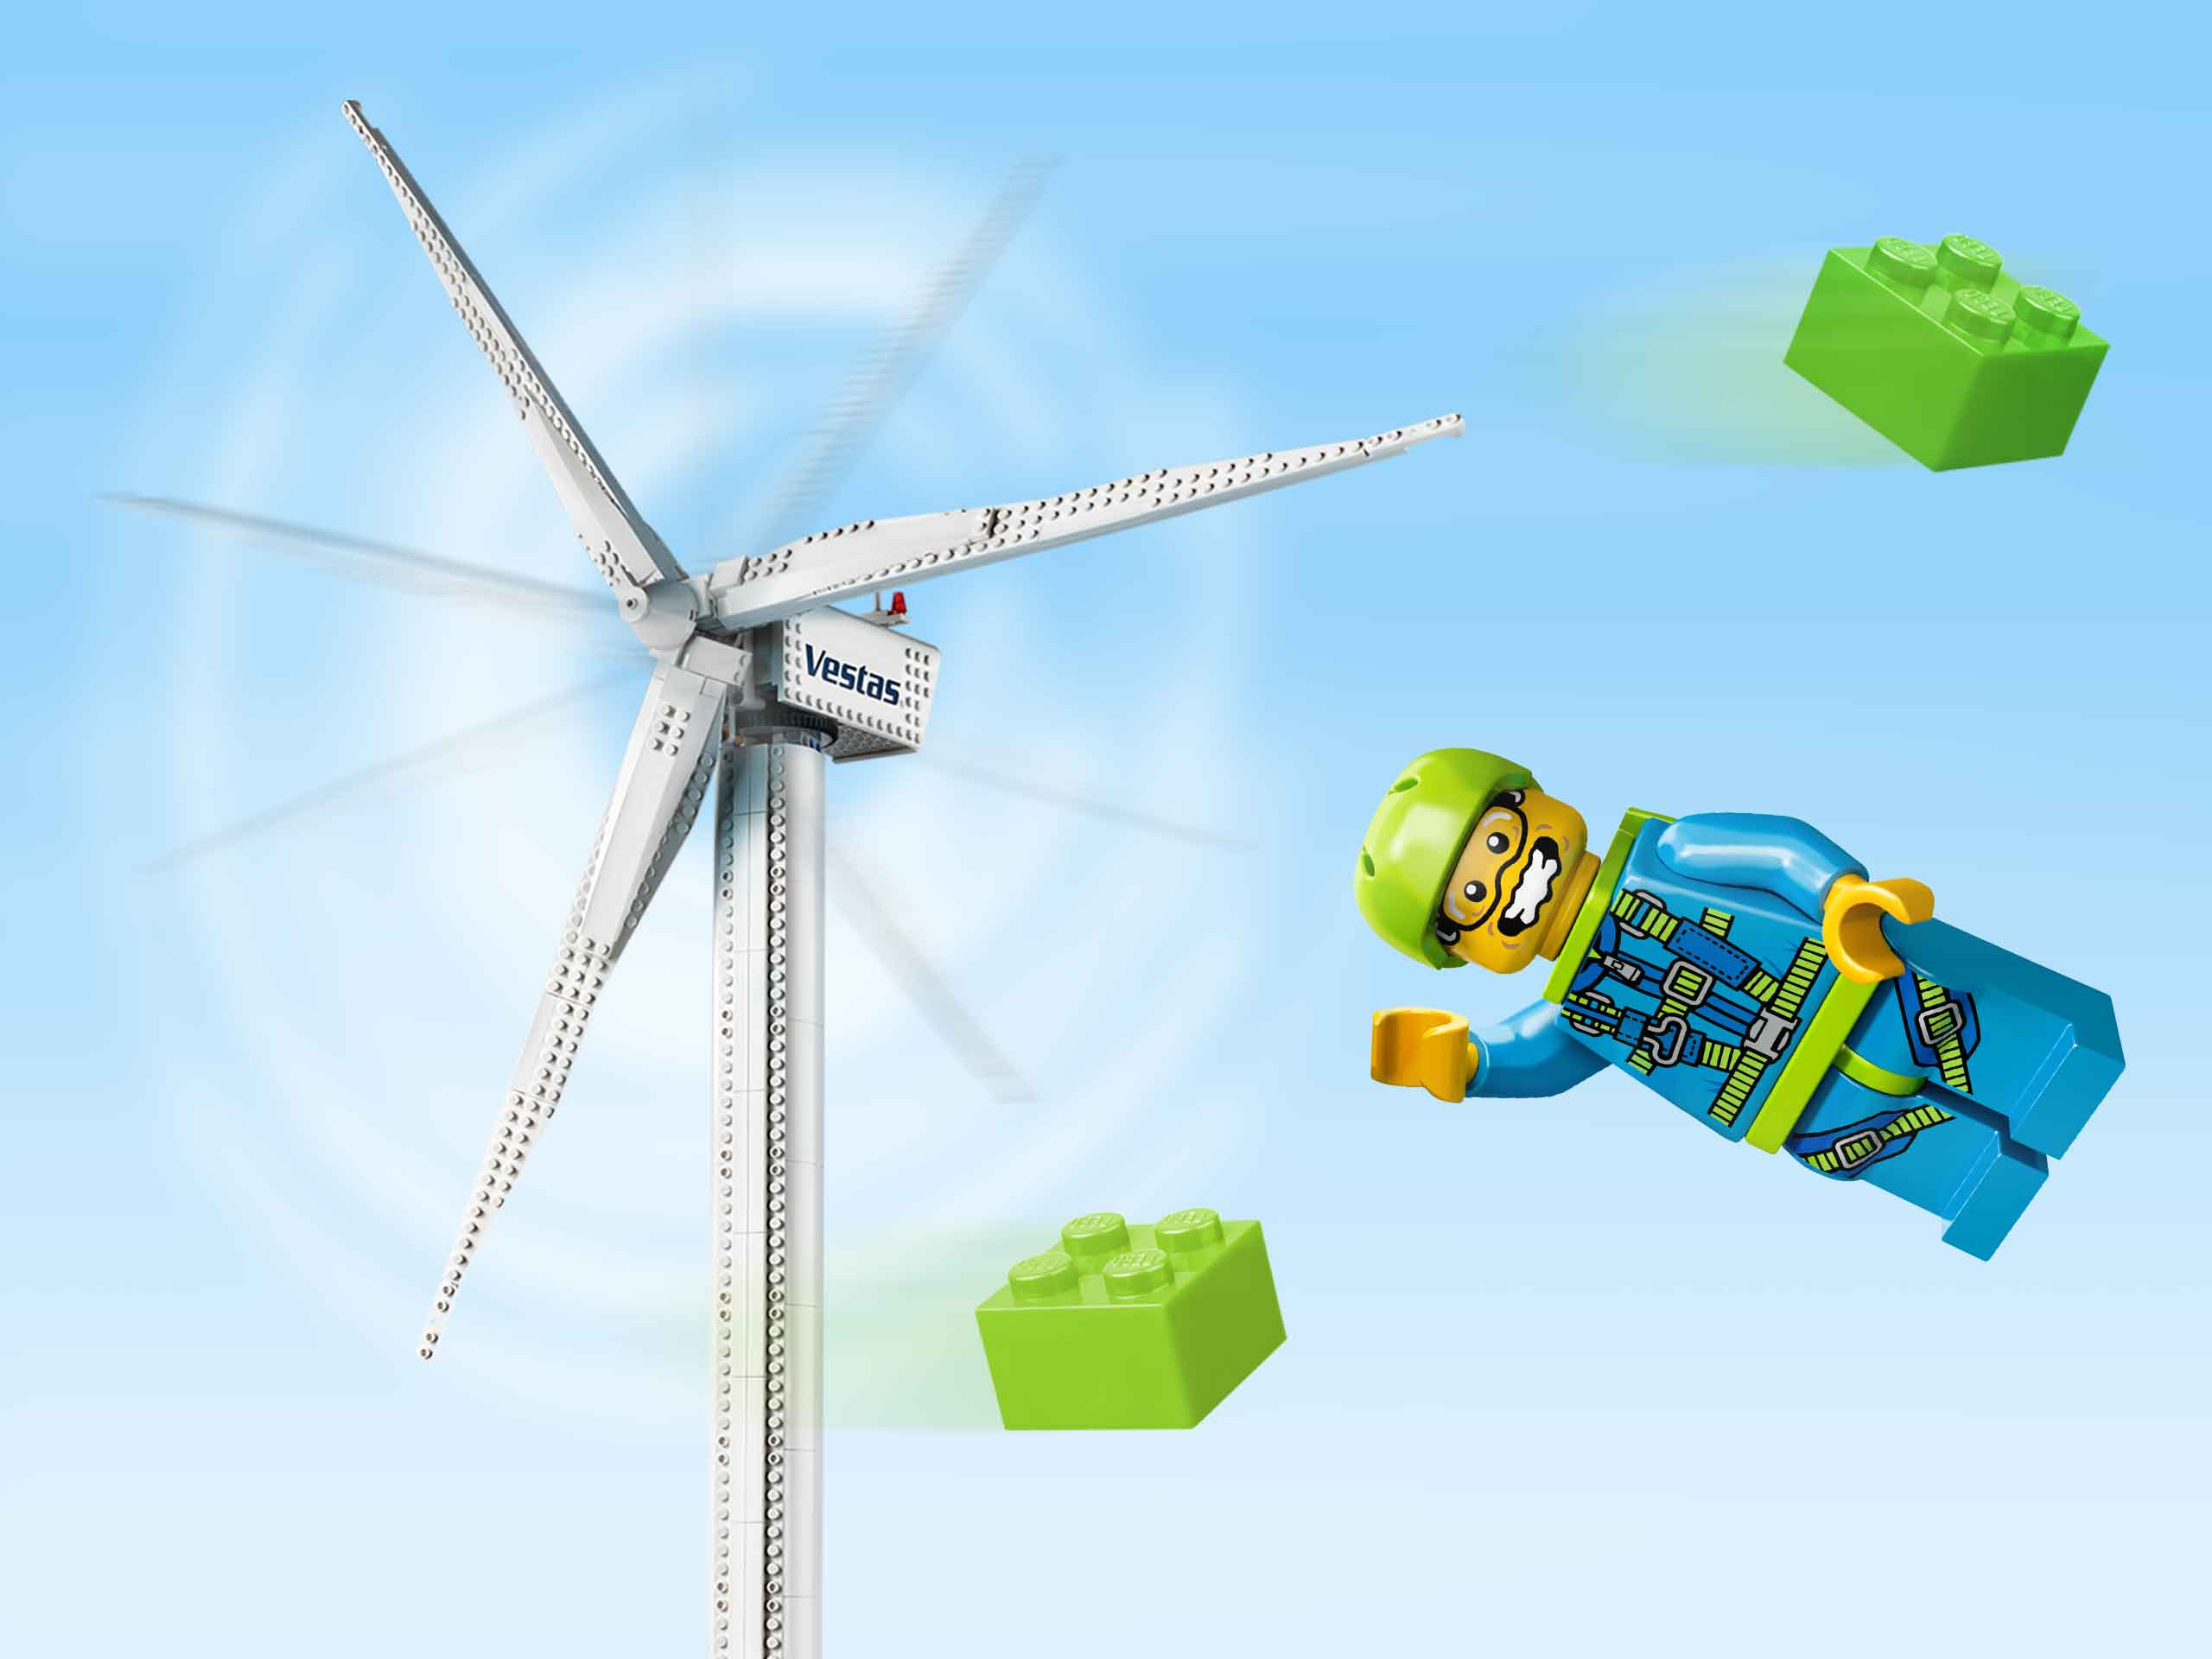 We are proud to have maintaned our 100% renewable energy achievement